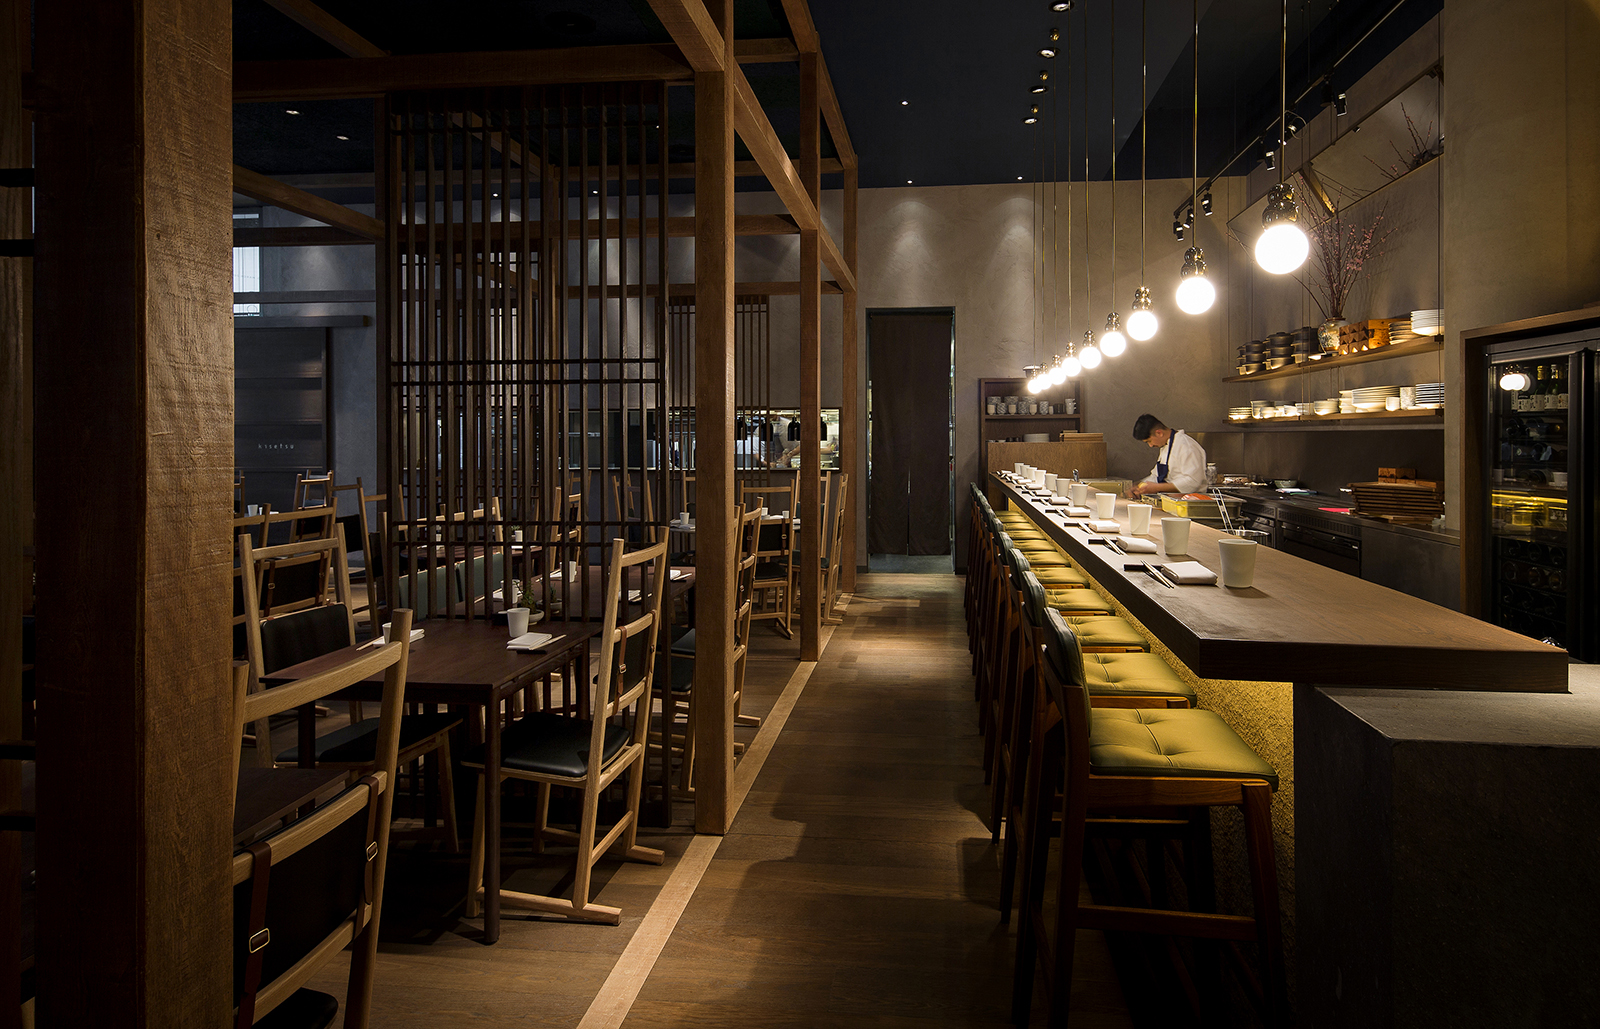 Neri hu design a japanese izakaya for jason atherton 39 s new restaurant in london the spaces - British interior design style pragmatism comes first ...